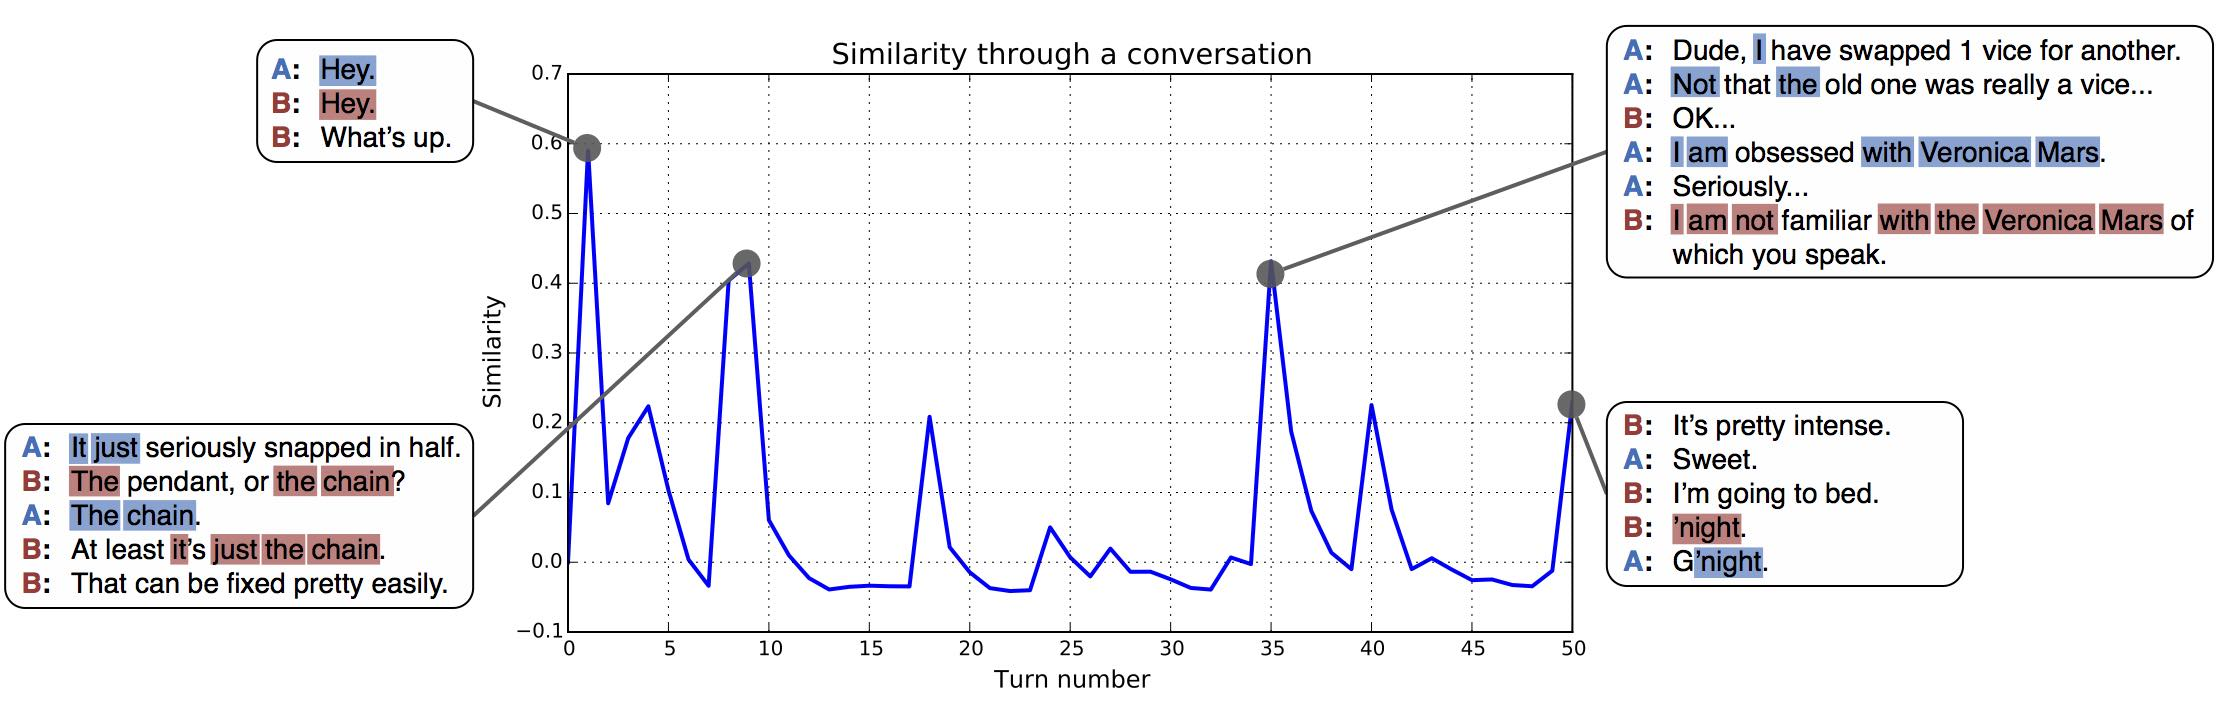 Annotated similarity graph thumbnail